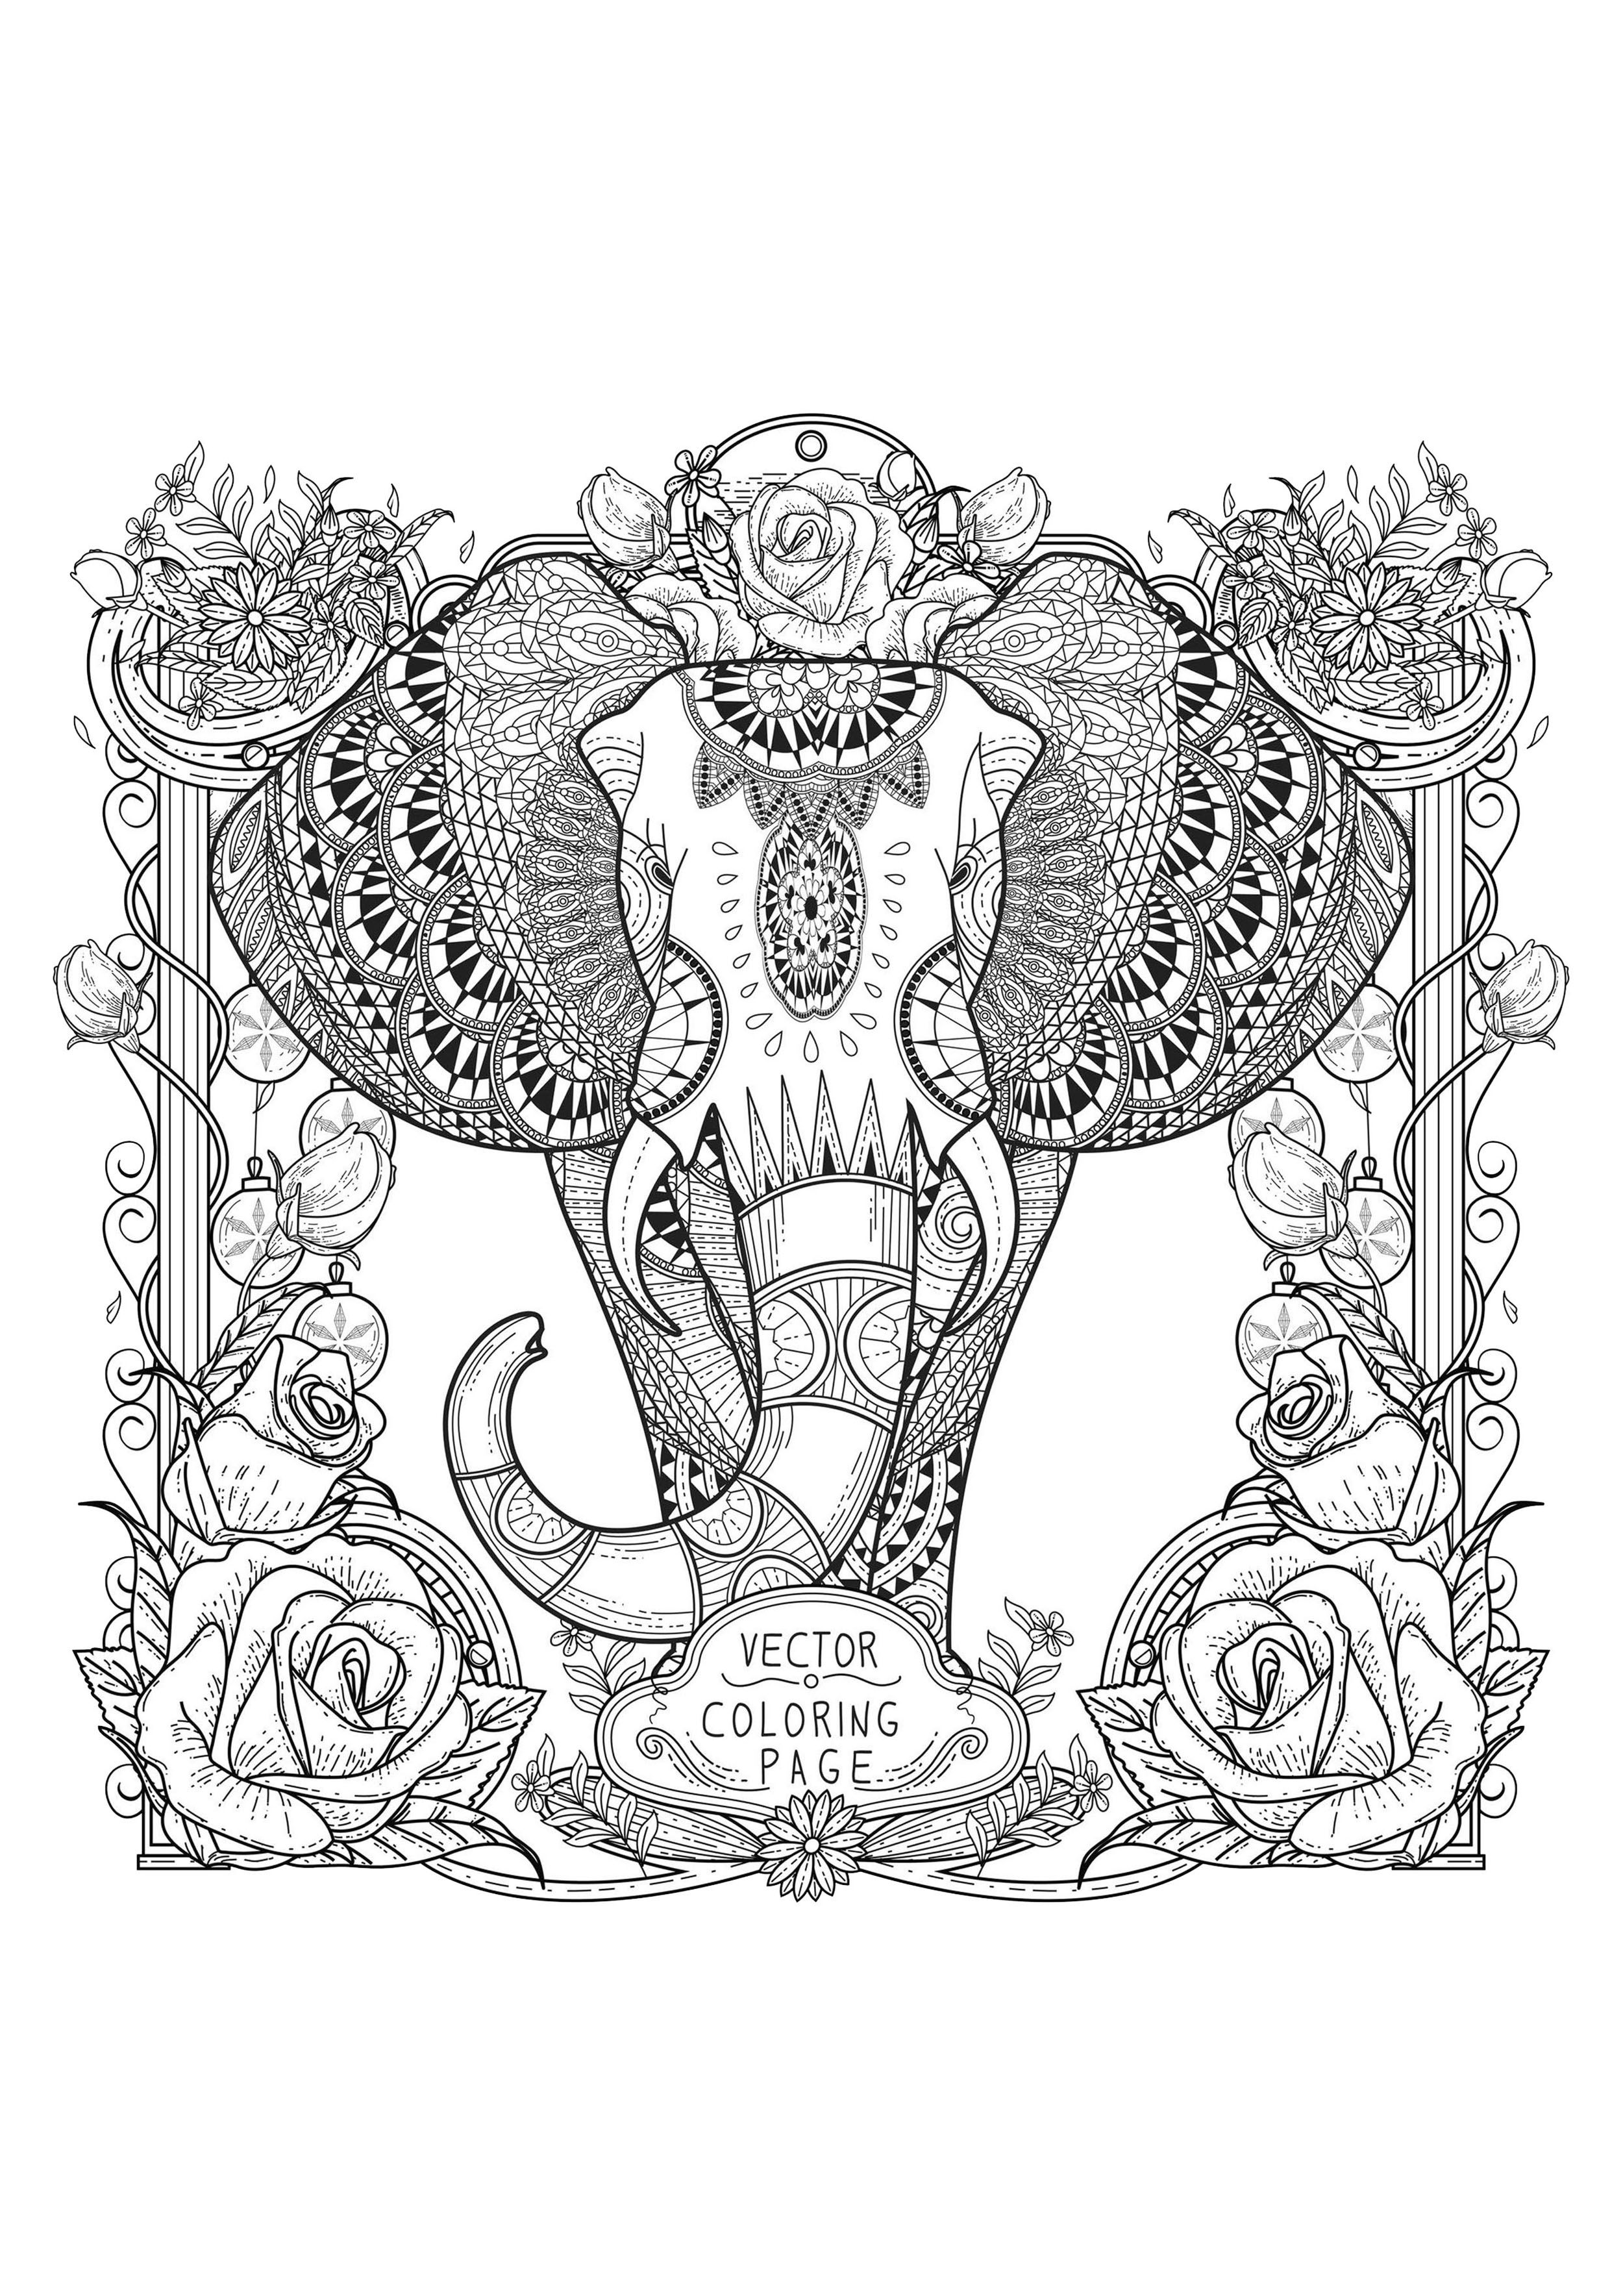 Elephant With Complex Patterns Elephants Coloring Pages For